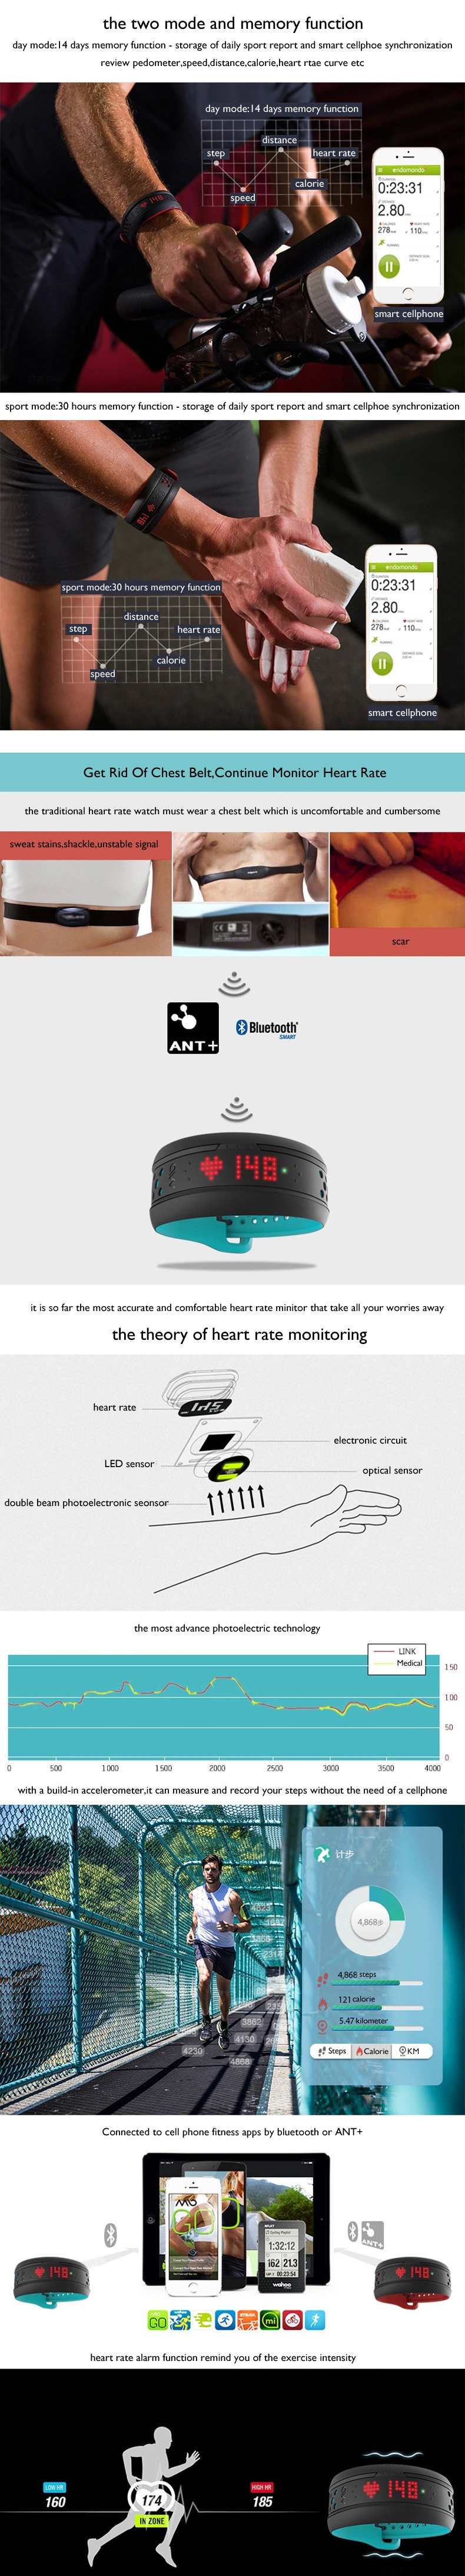 mio fuse smart continous heart rate whthout chest belt built-in storage function sport bracelet